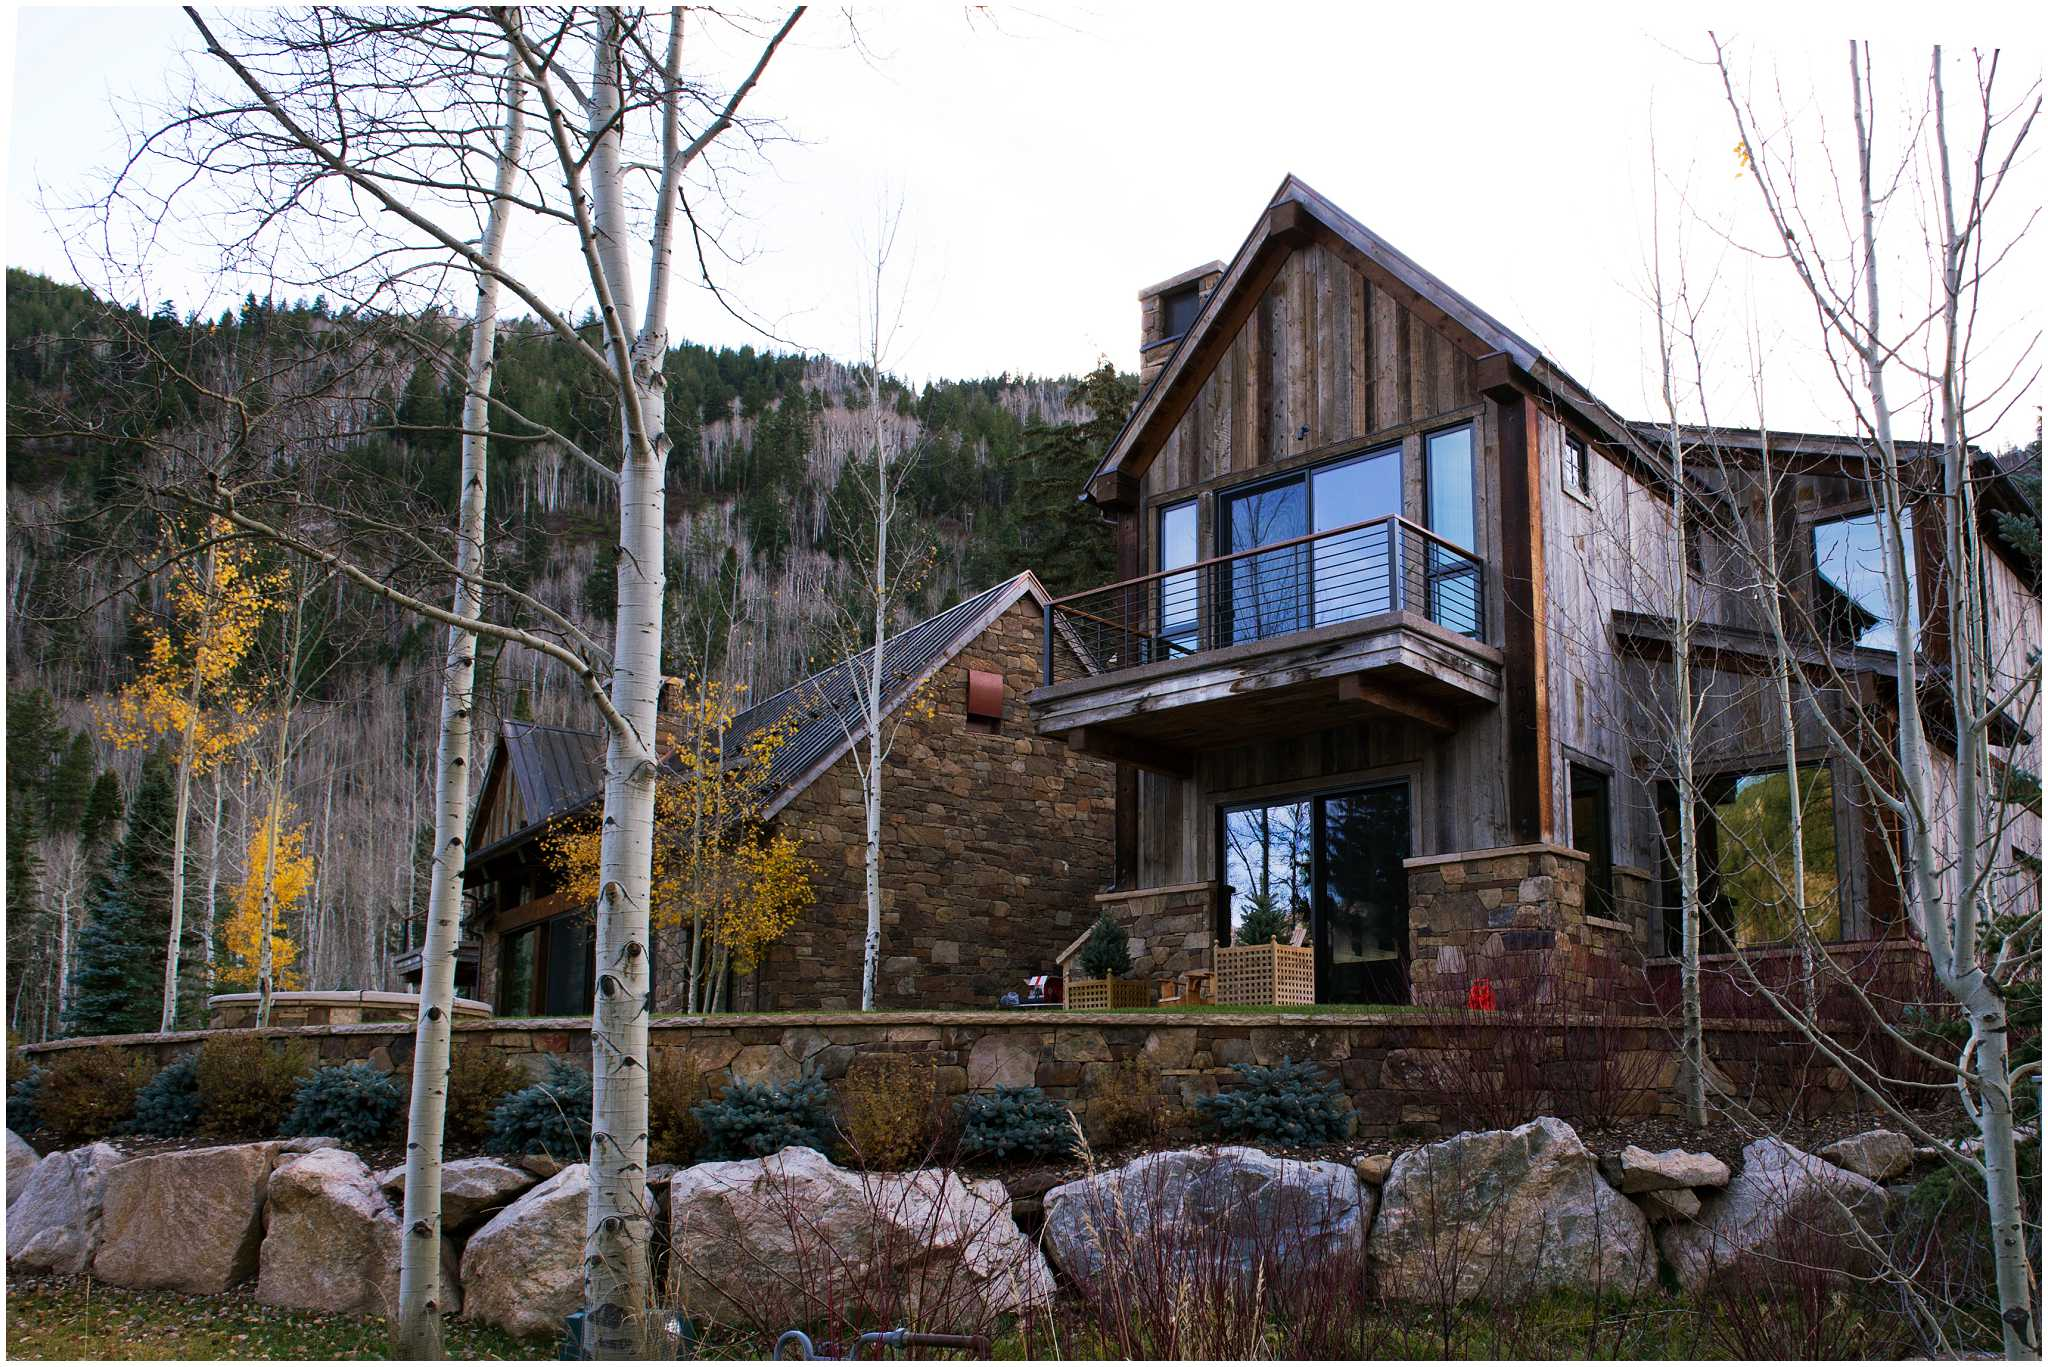 A Beautiful Mountain Modern Home Outside Aspen, CO.